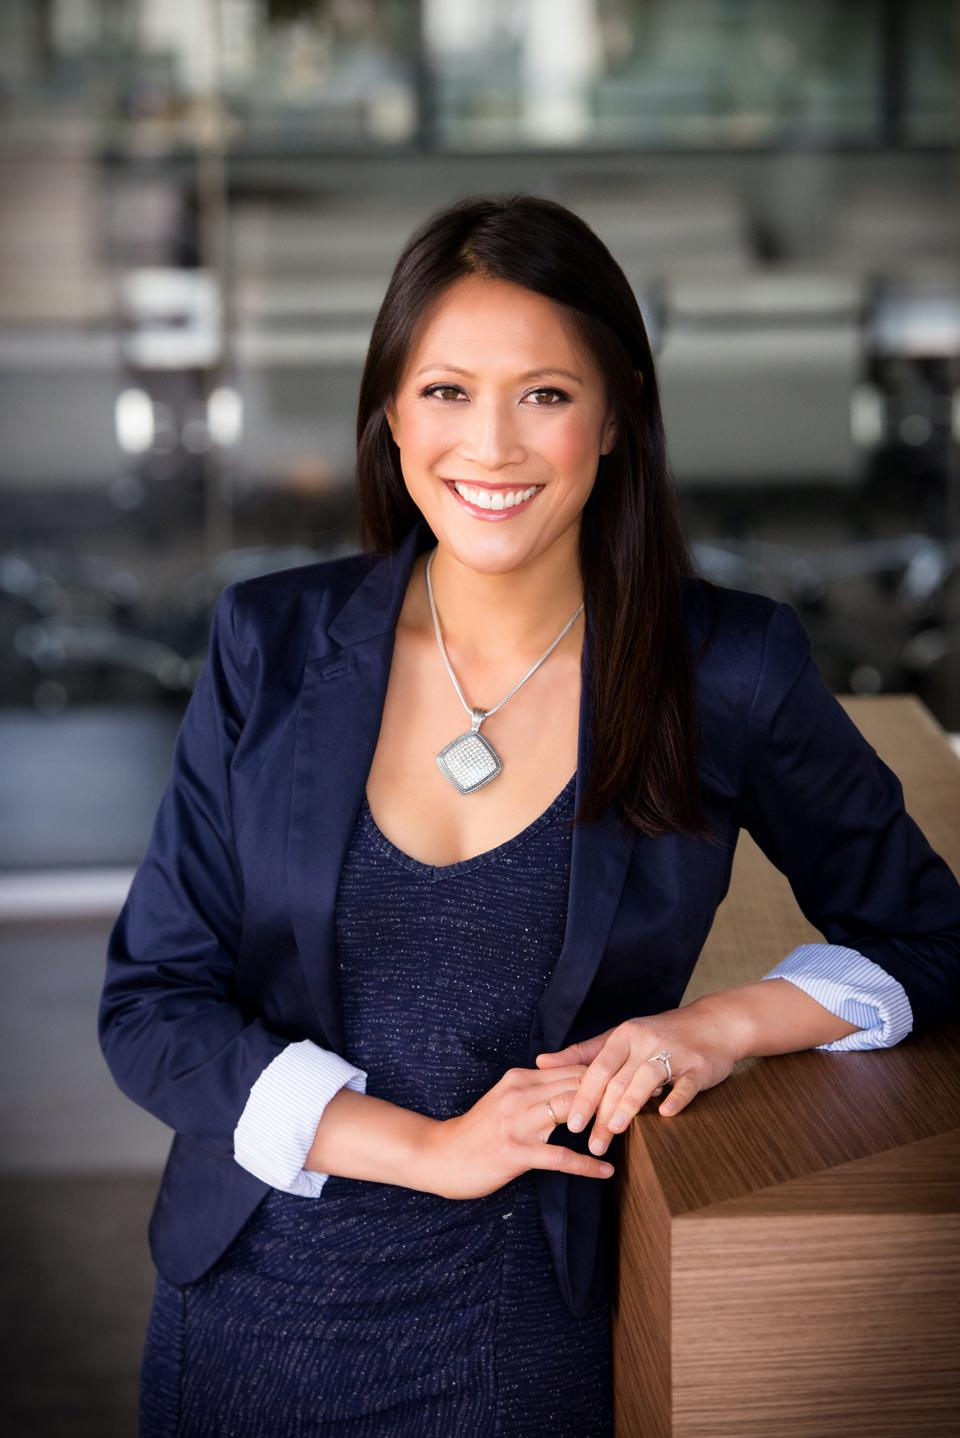 Asian American woman in a navy suit, smiling